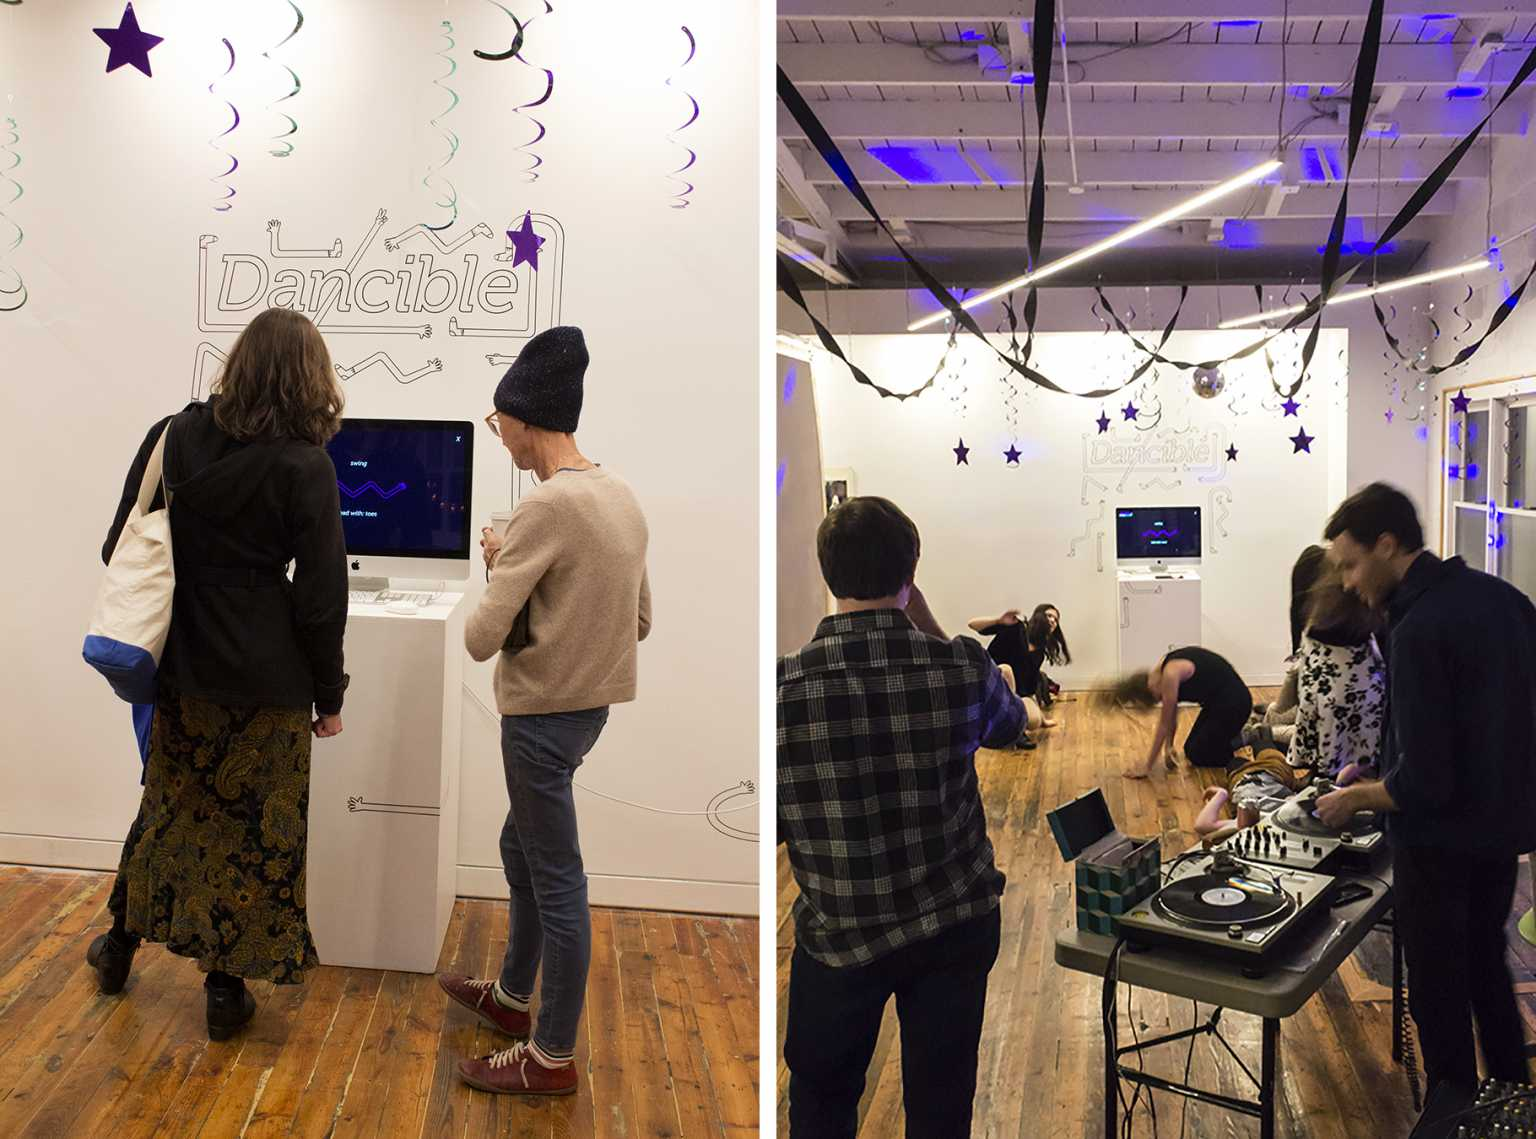 Installation view of Dancible, an interactive game to teach basic dance moves